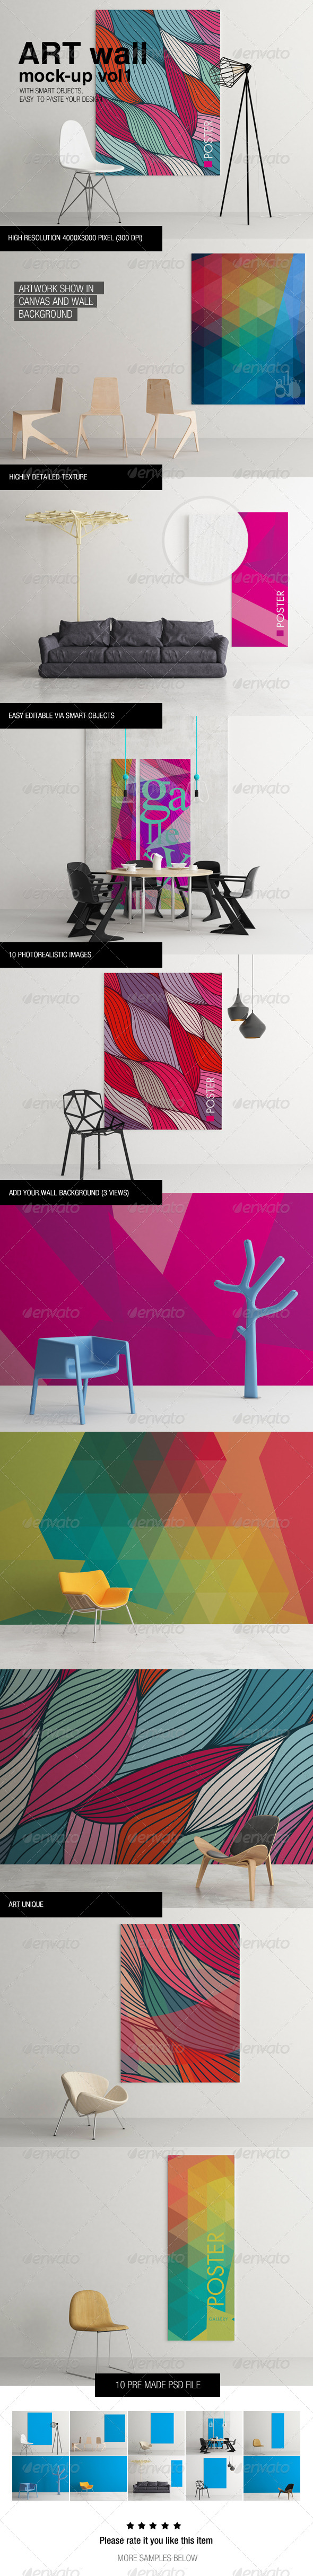 GraphicRiver Art Wall Mock-up Vol.1 6333316